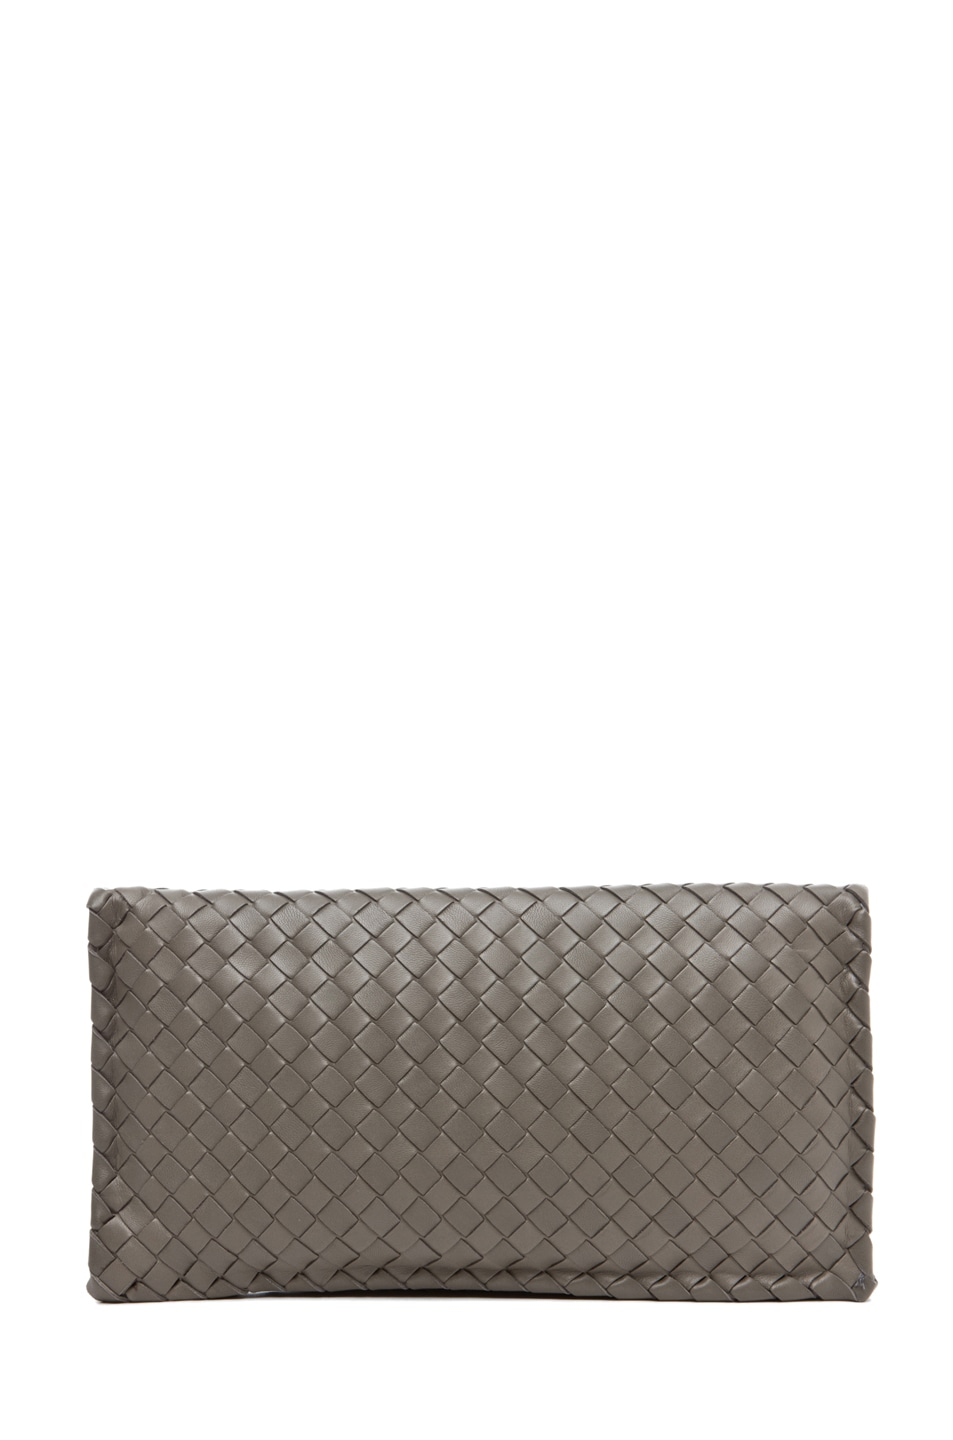 Image 2 of Bottega Veneta Small Clutch in Grey